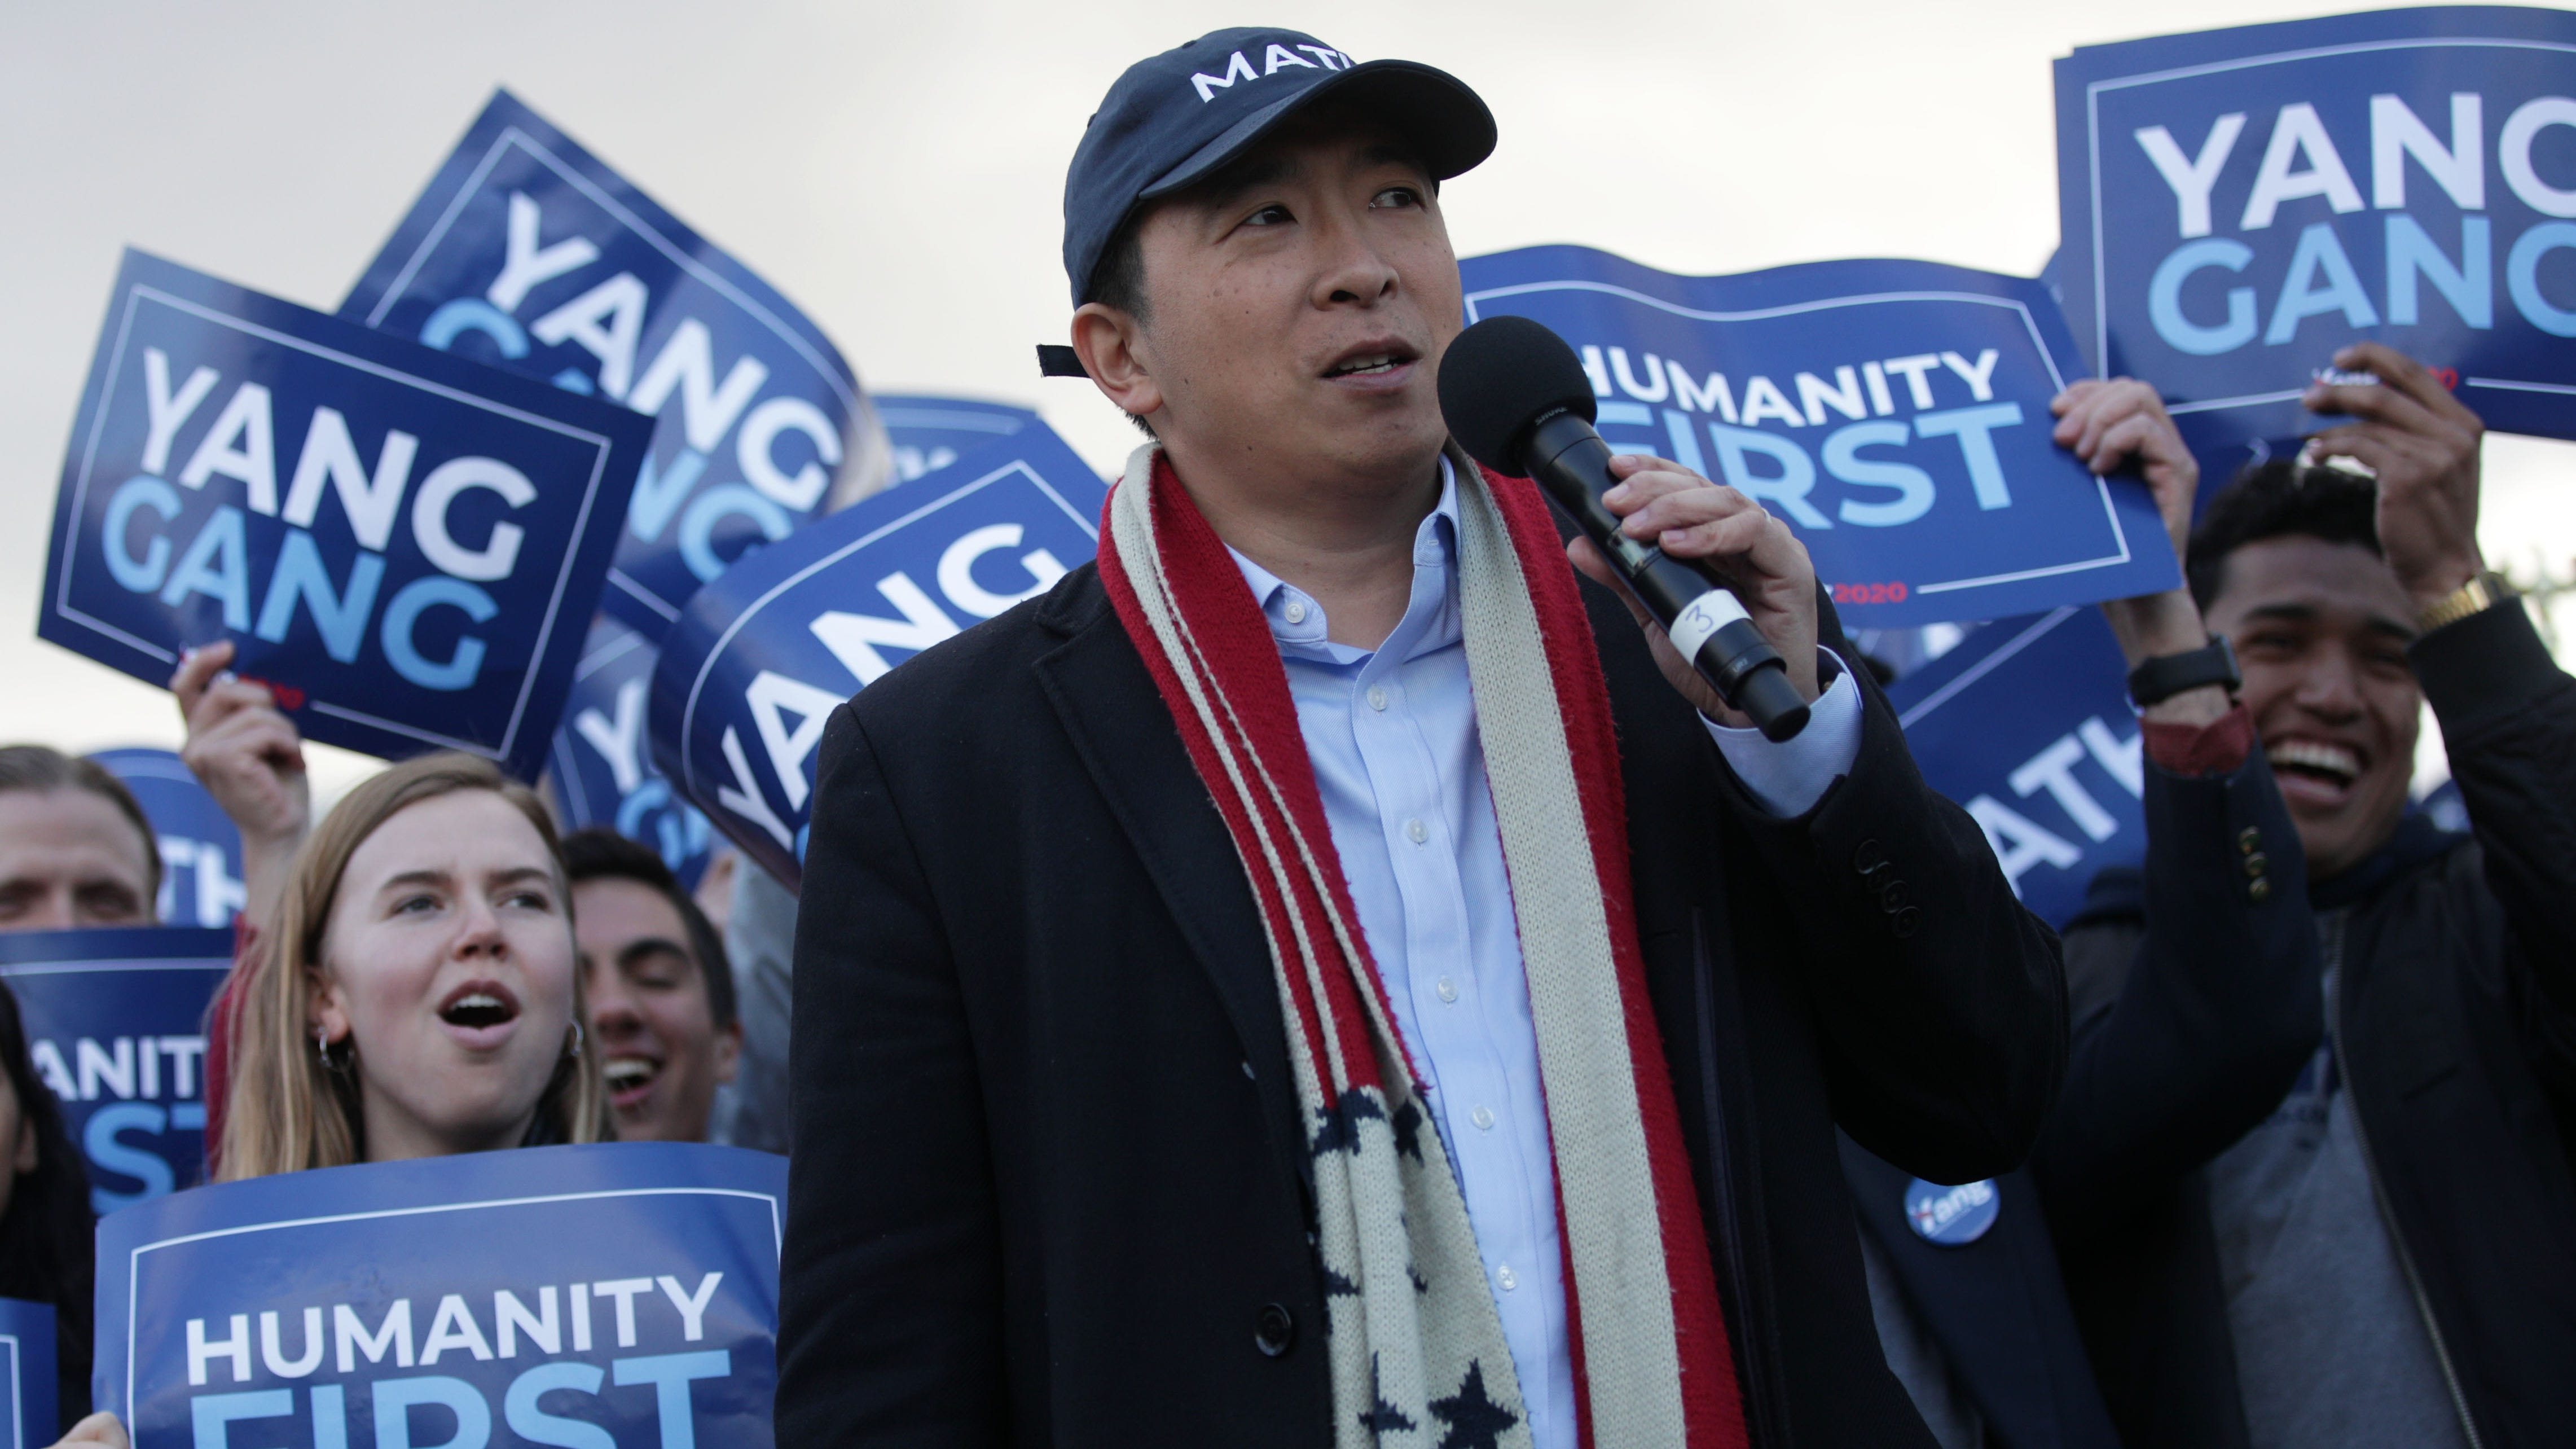 Andrew Yang, Marianne Williamson, Bernie Sanders are the 2020 candidates standing out to our readers